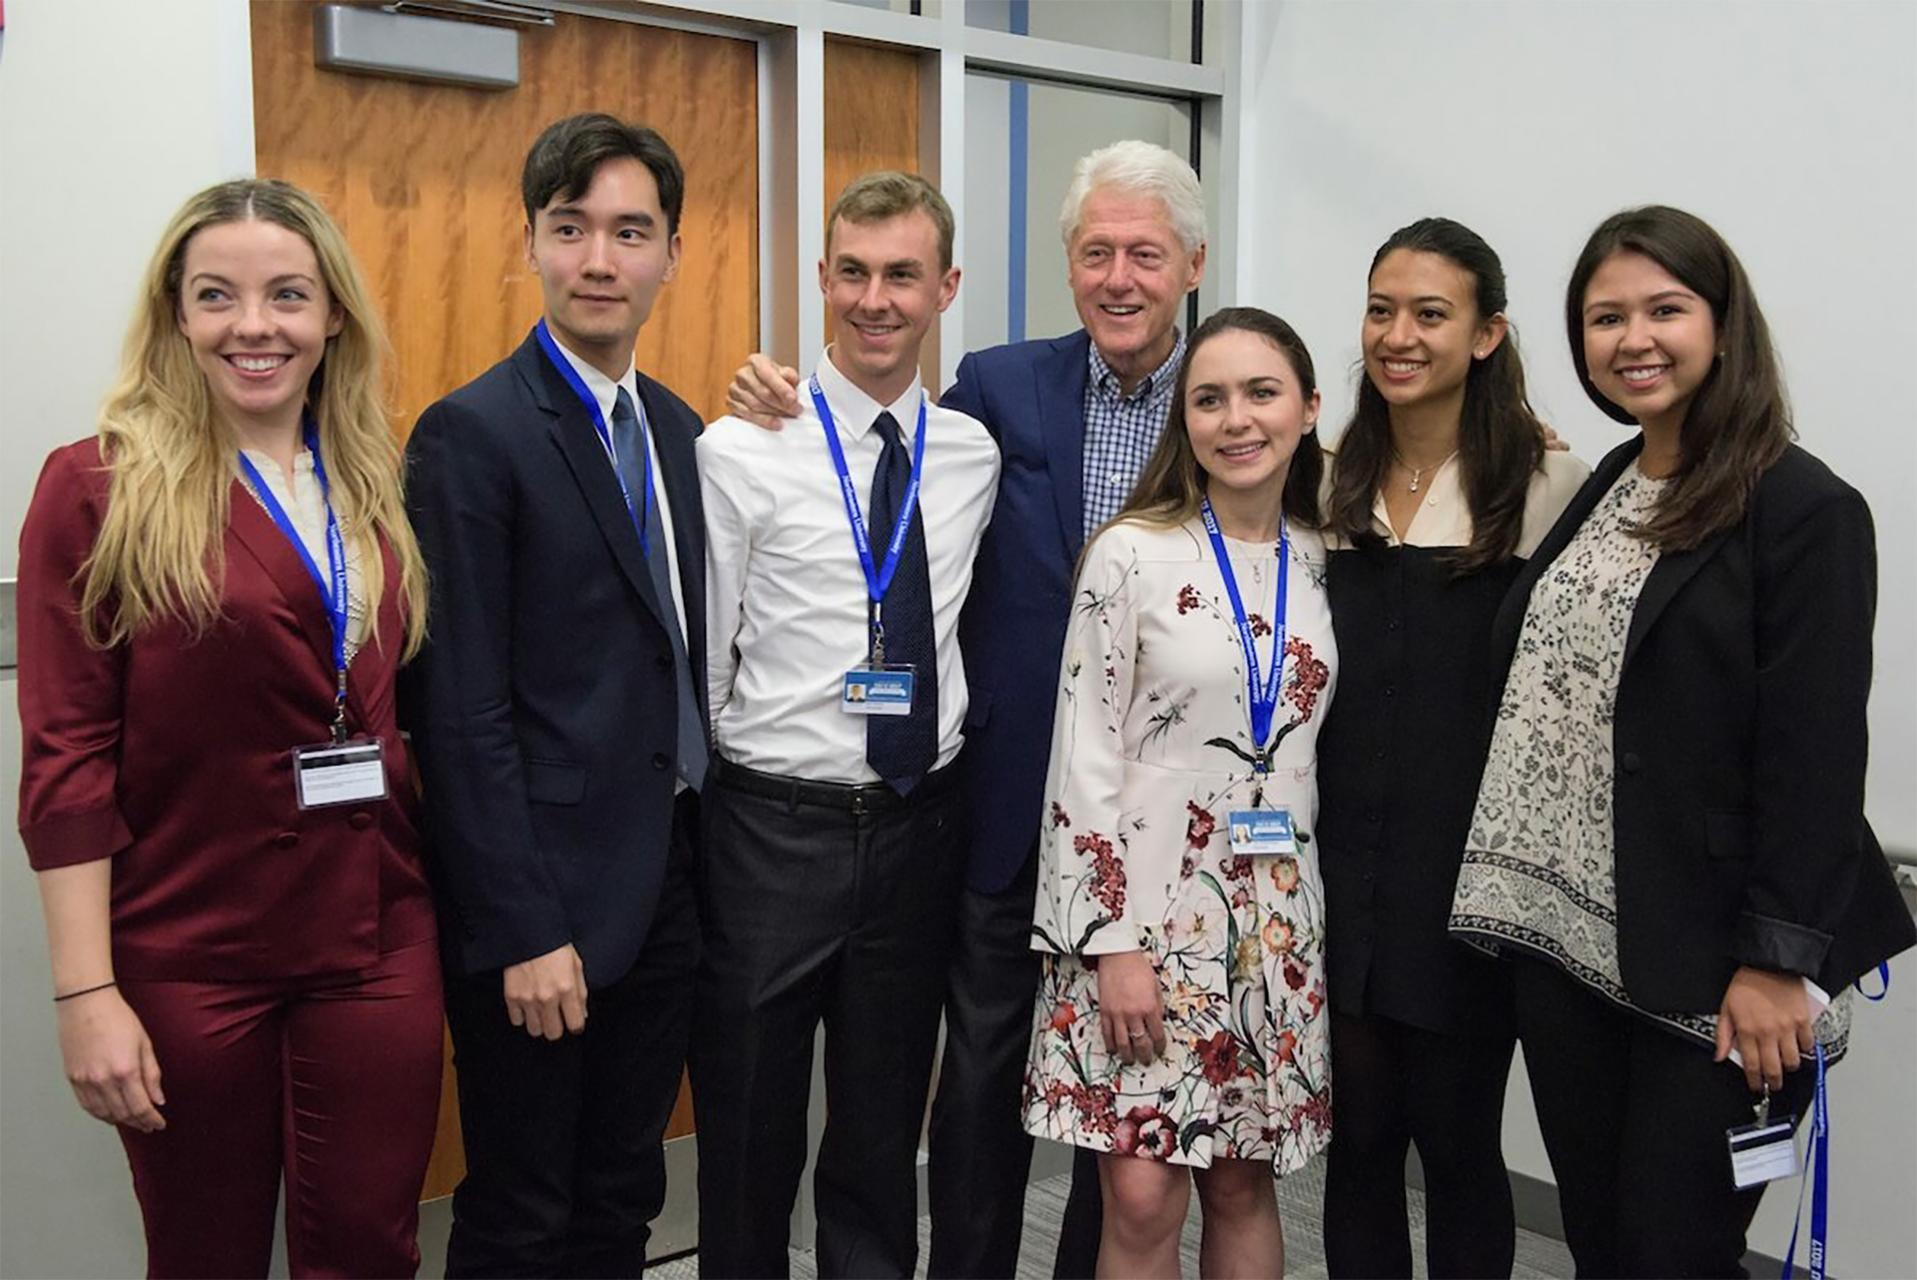 Shawn Kim with President Clinton at Northeastern